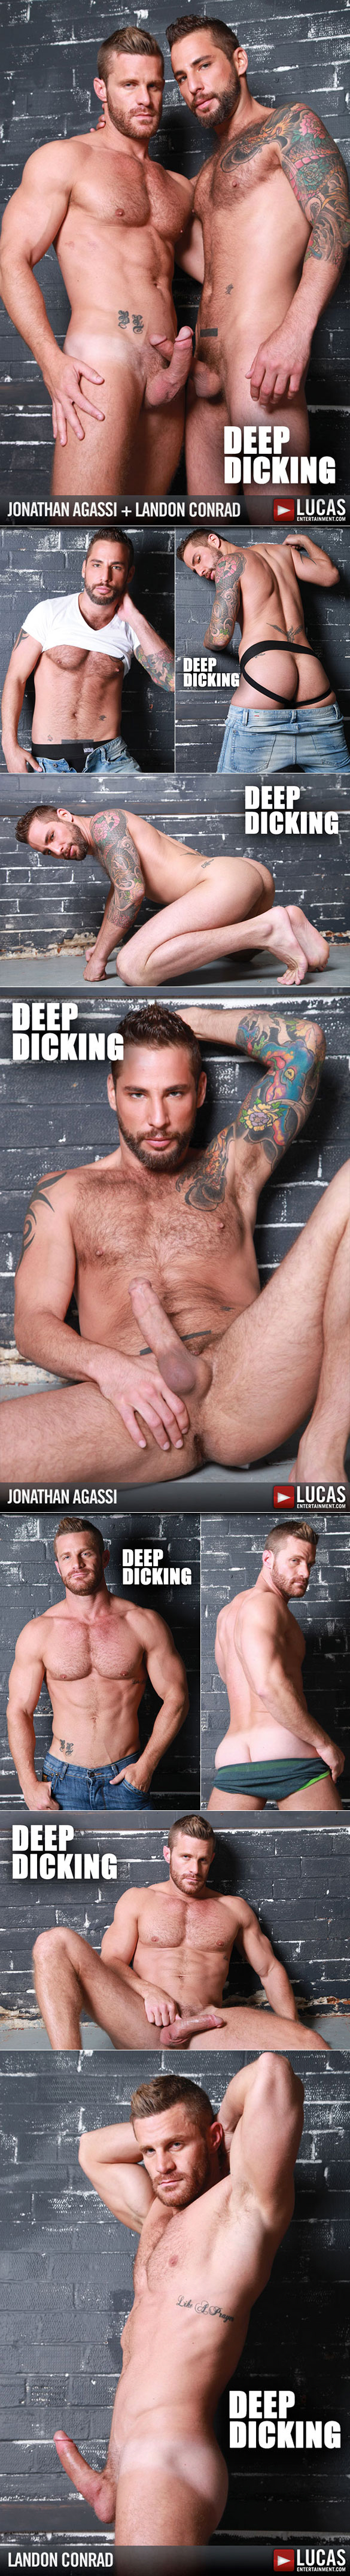 "Lucas Entertainment: Jonathan Agassi and Landon Conrad flip fuck in ""Deep Dicking"""